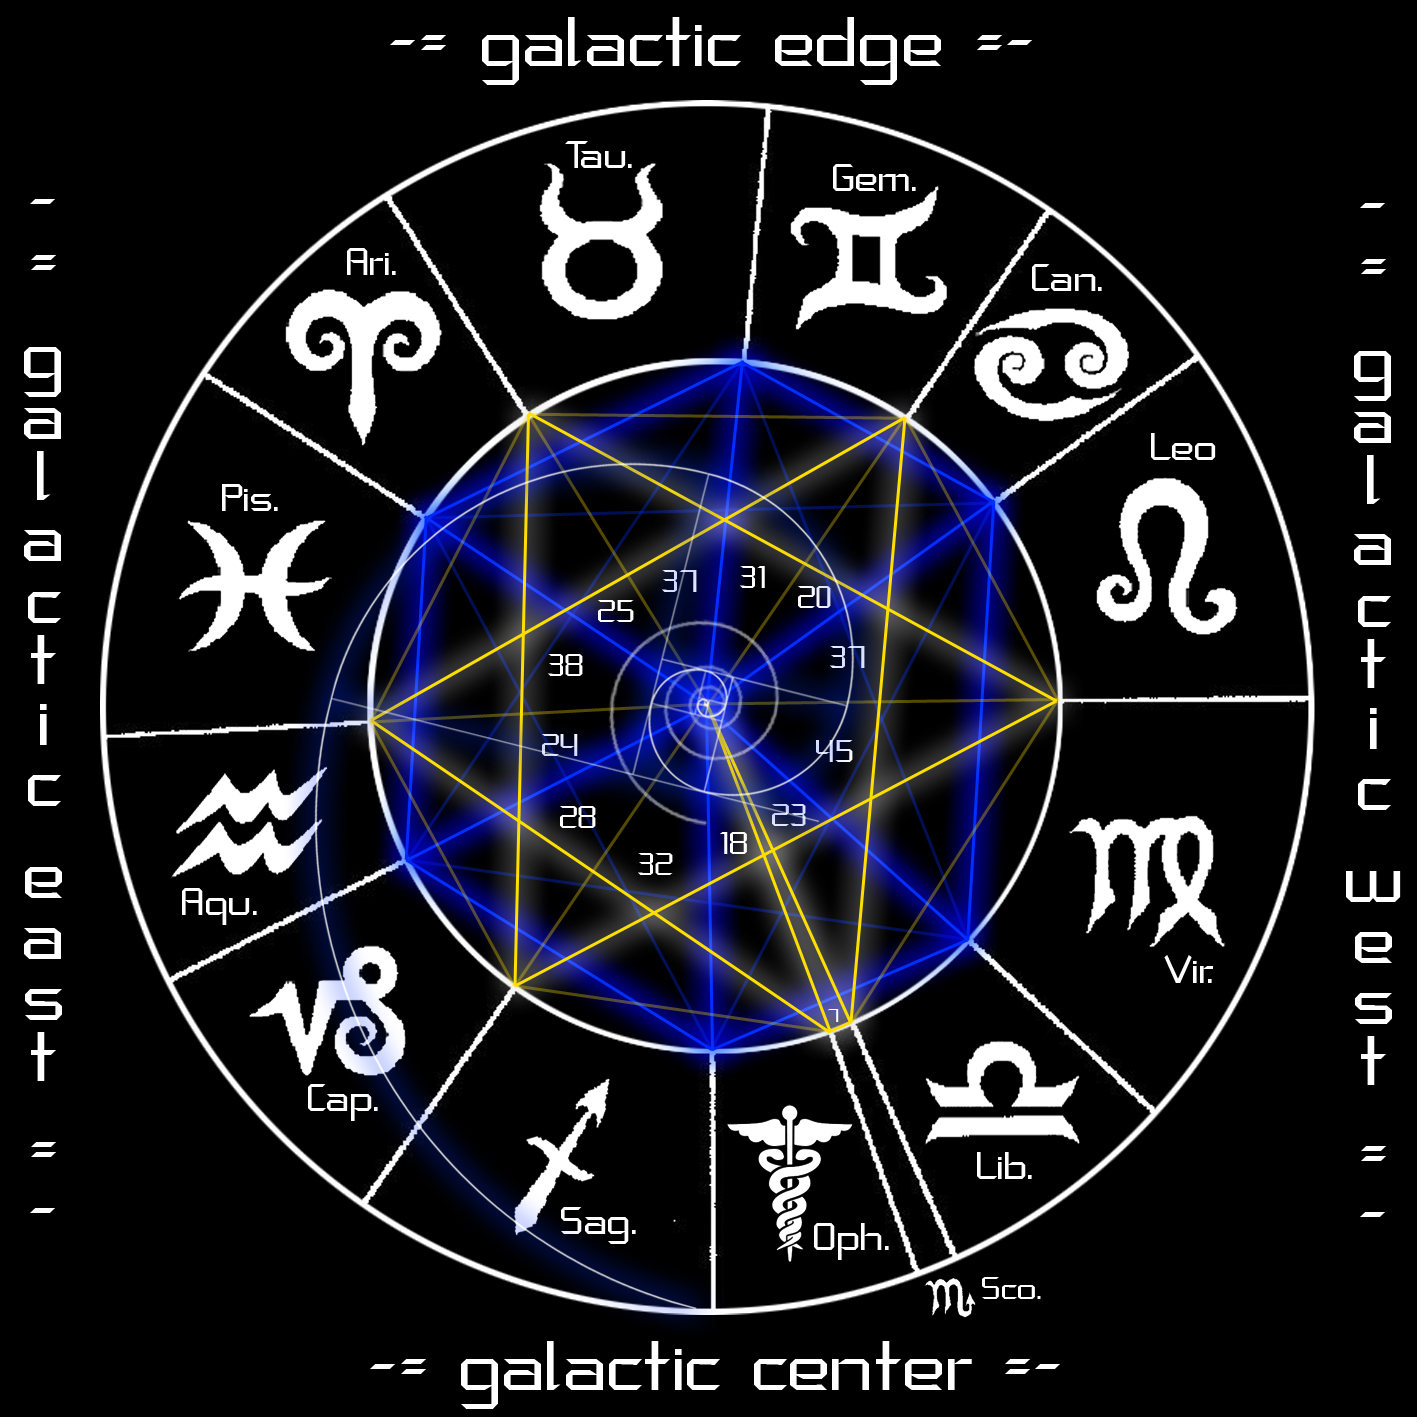 Jade Fortune Intuitive Counsellor  Quantum Astrology. Rock N Roll Signs. Emg Signs. Mmr Signs. Lineman Signs. Istj Signs. Circuit Signs. Fire Exit Signs. Acute Signs